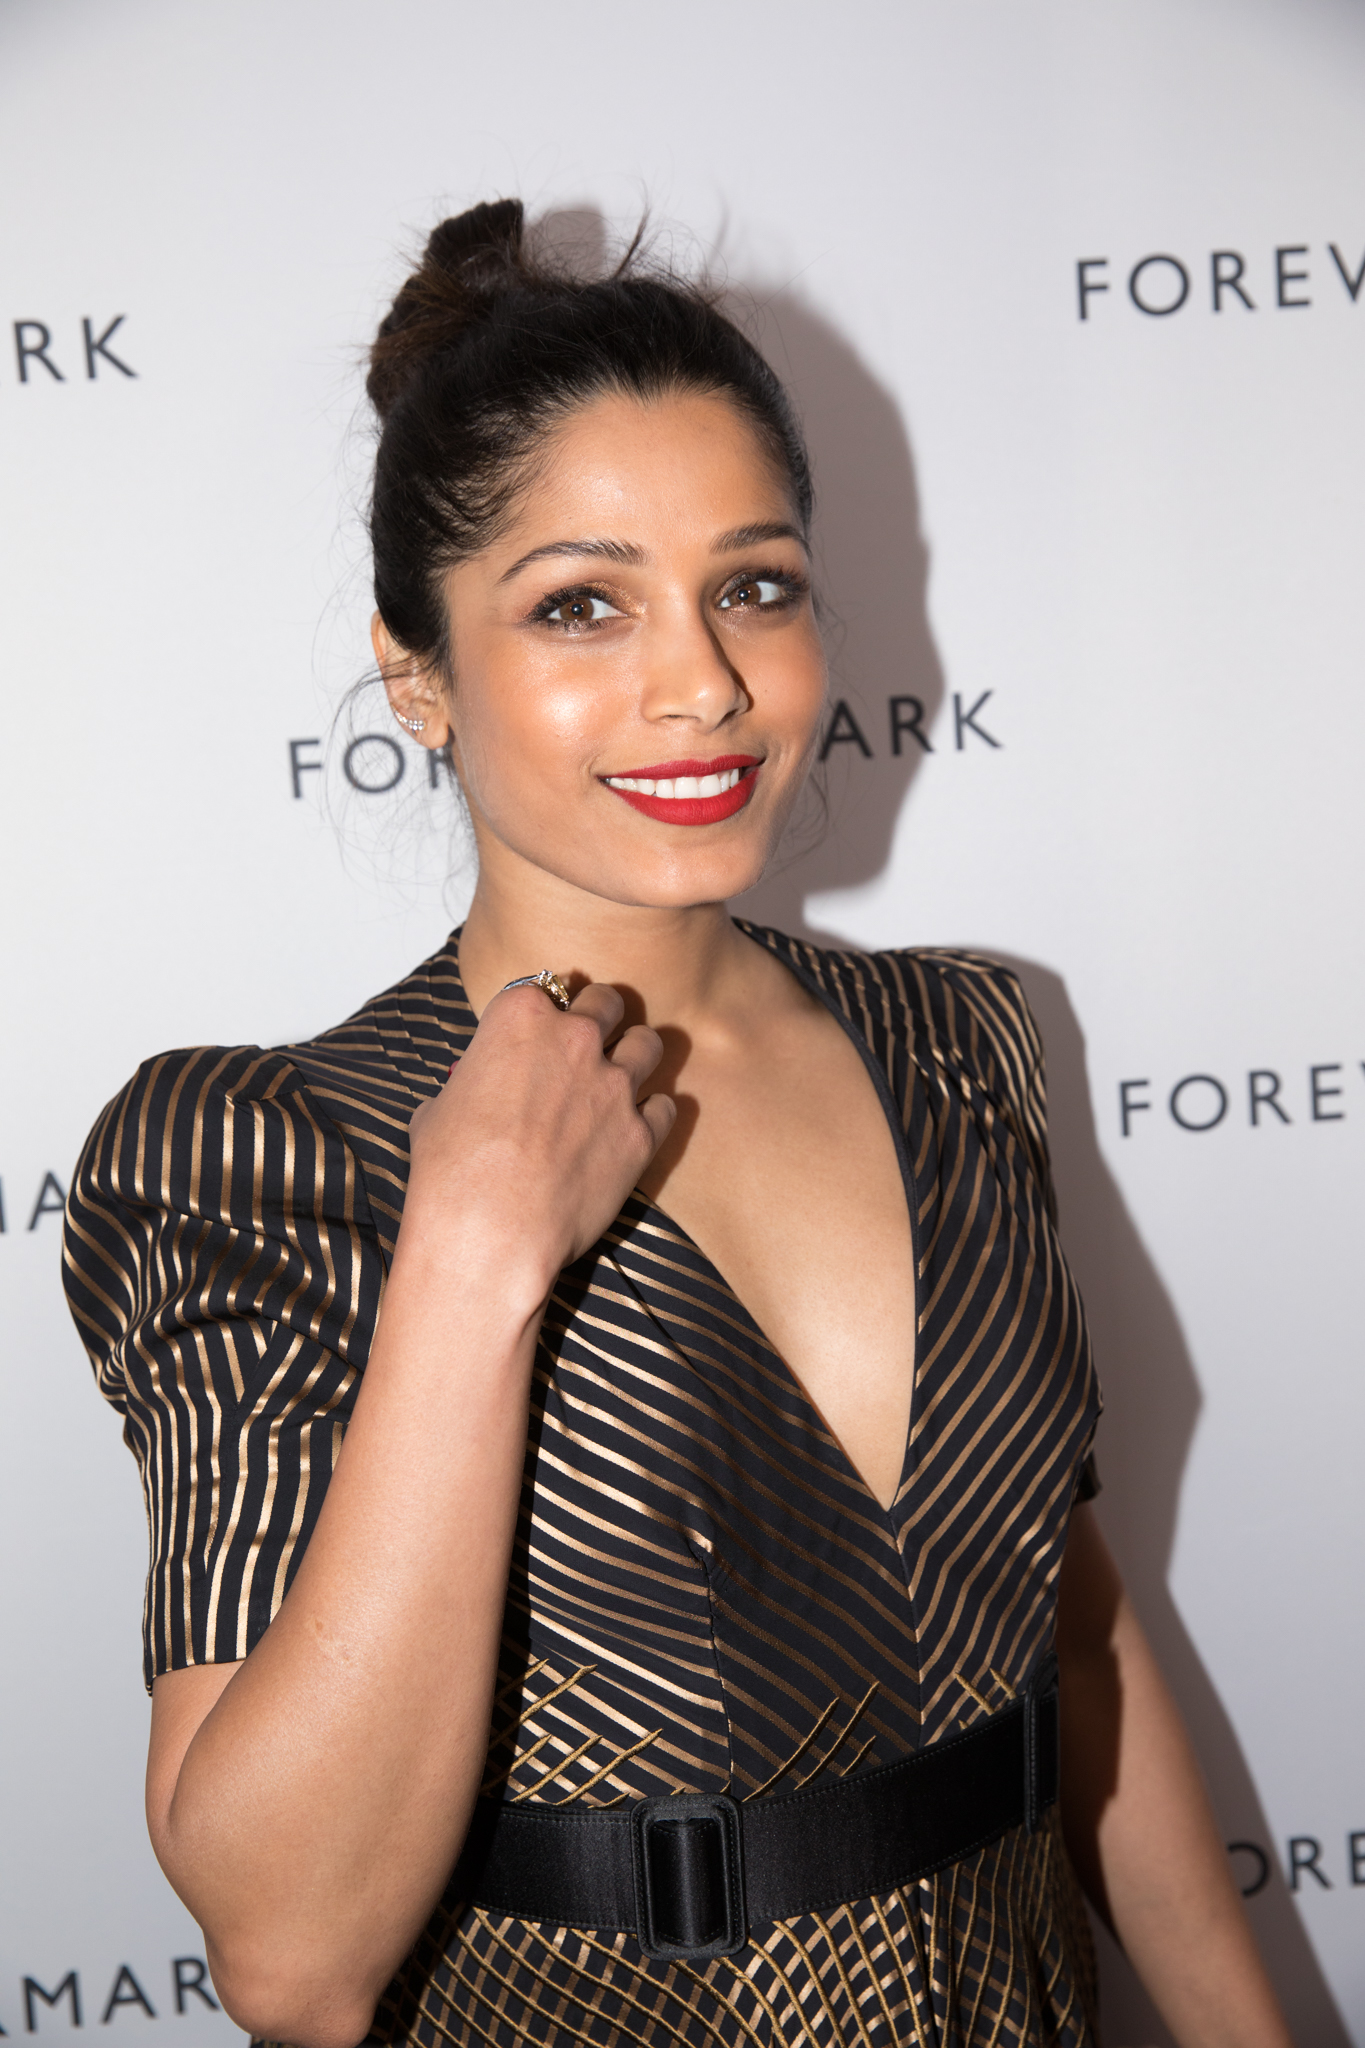 Freida Pinto Is Foreve...